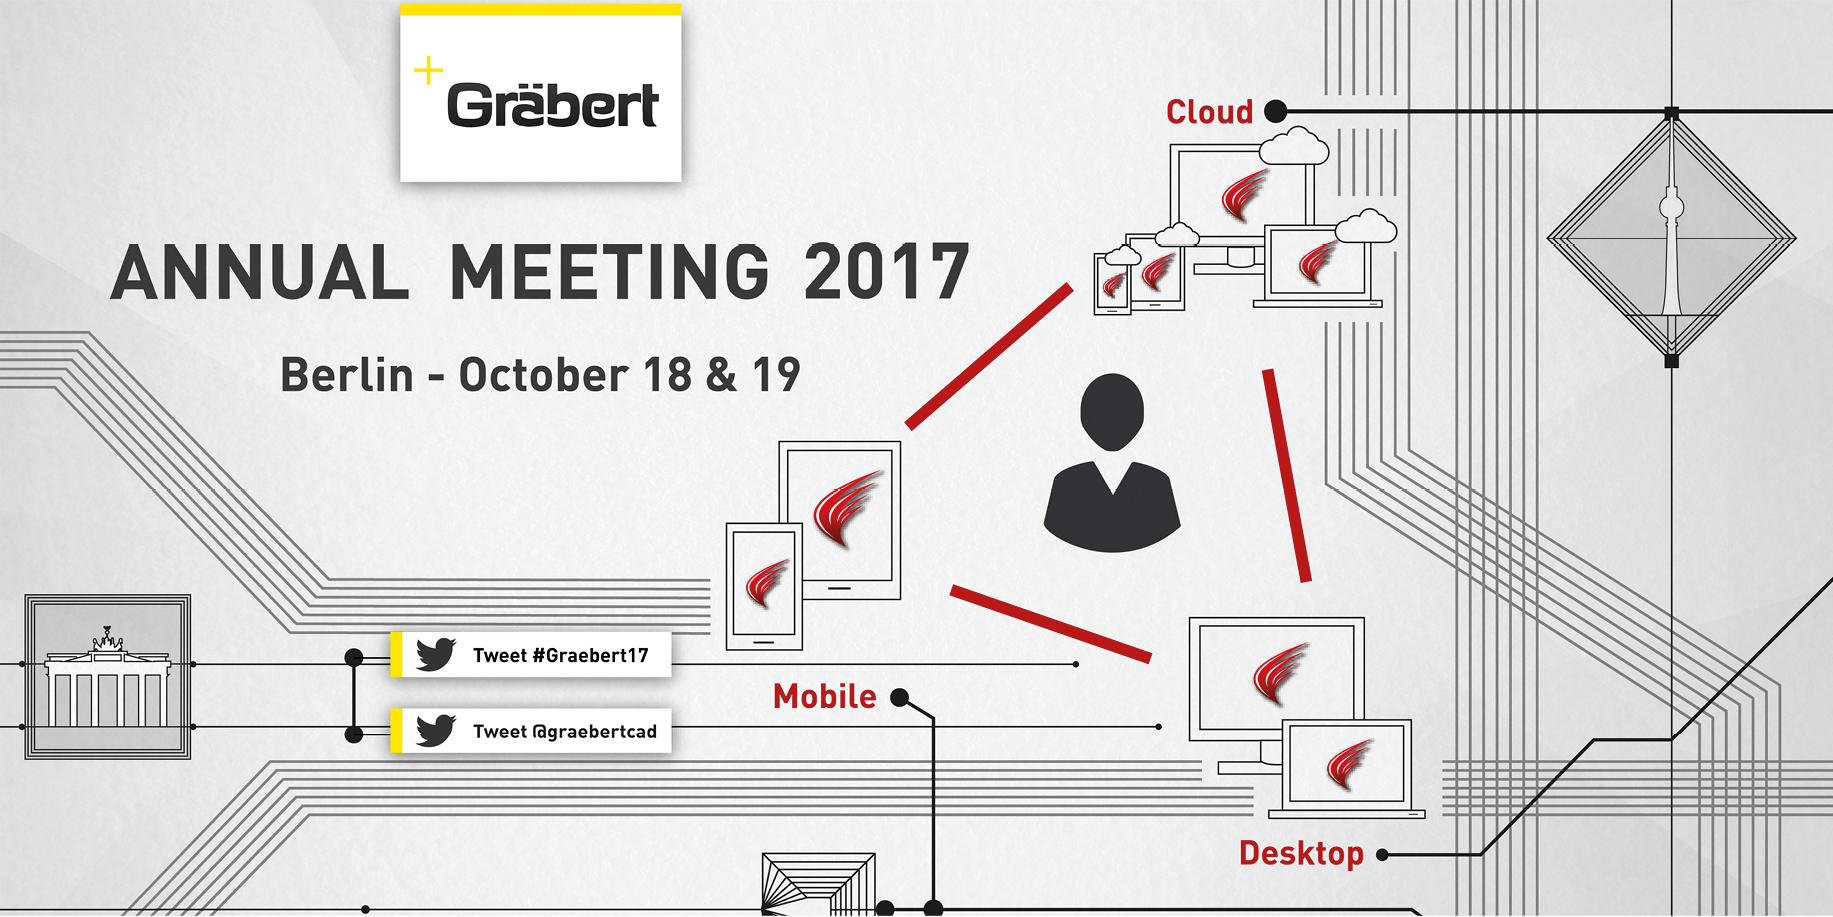 Highlights for Graebert Annual Meeting 2017